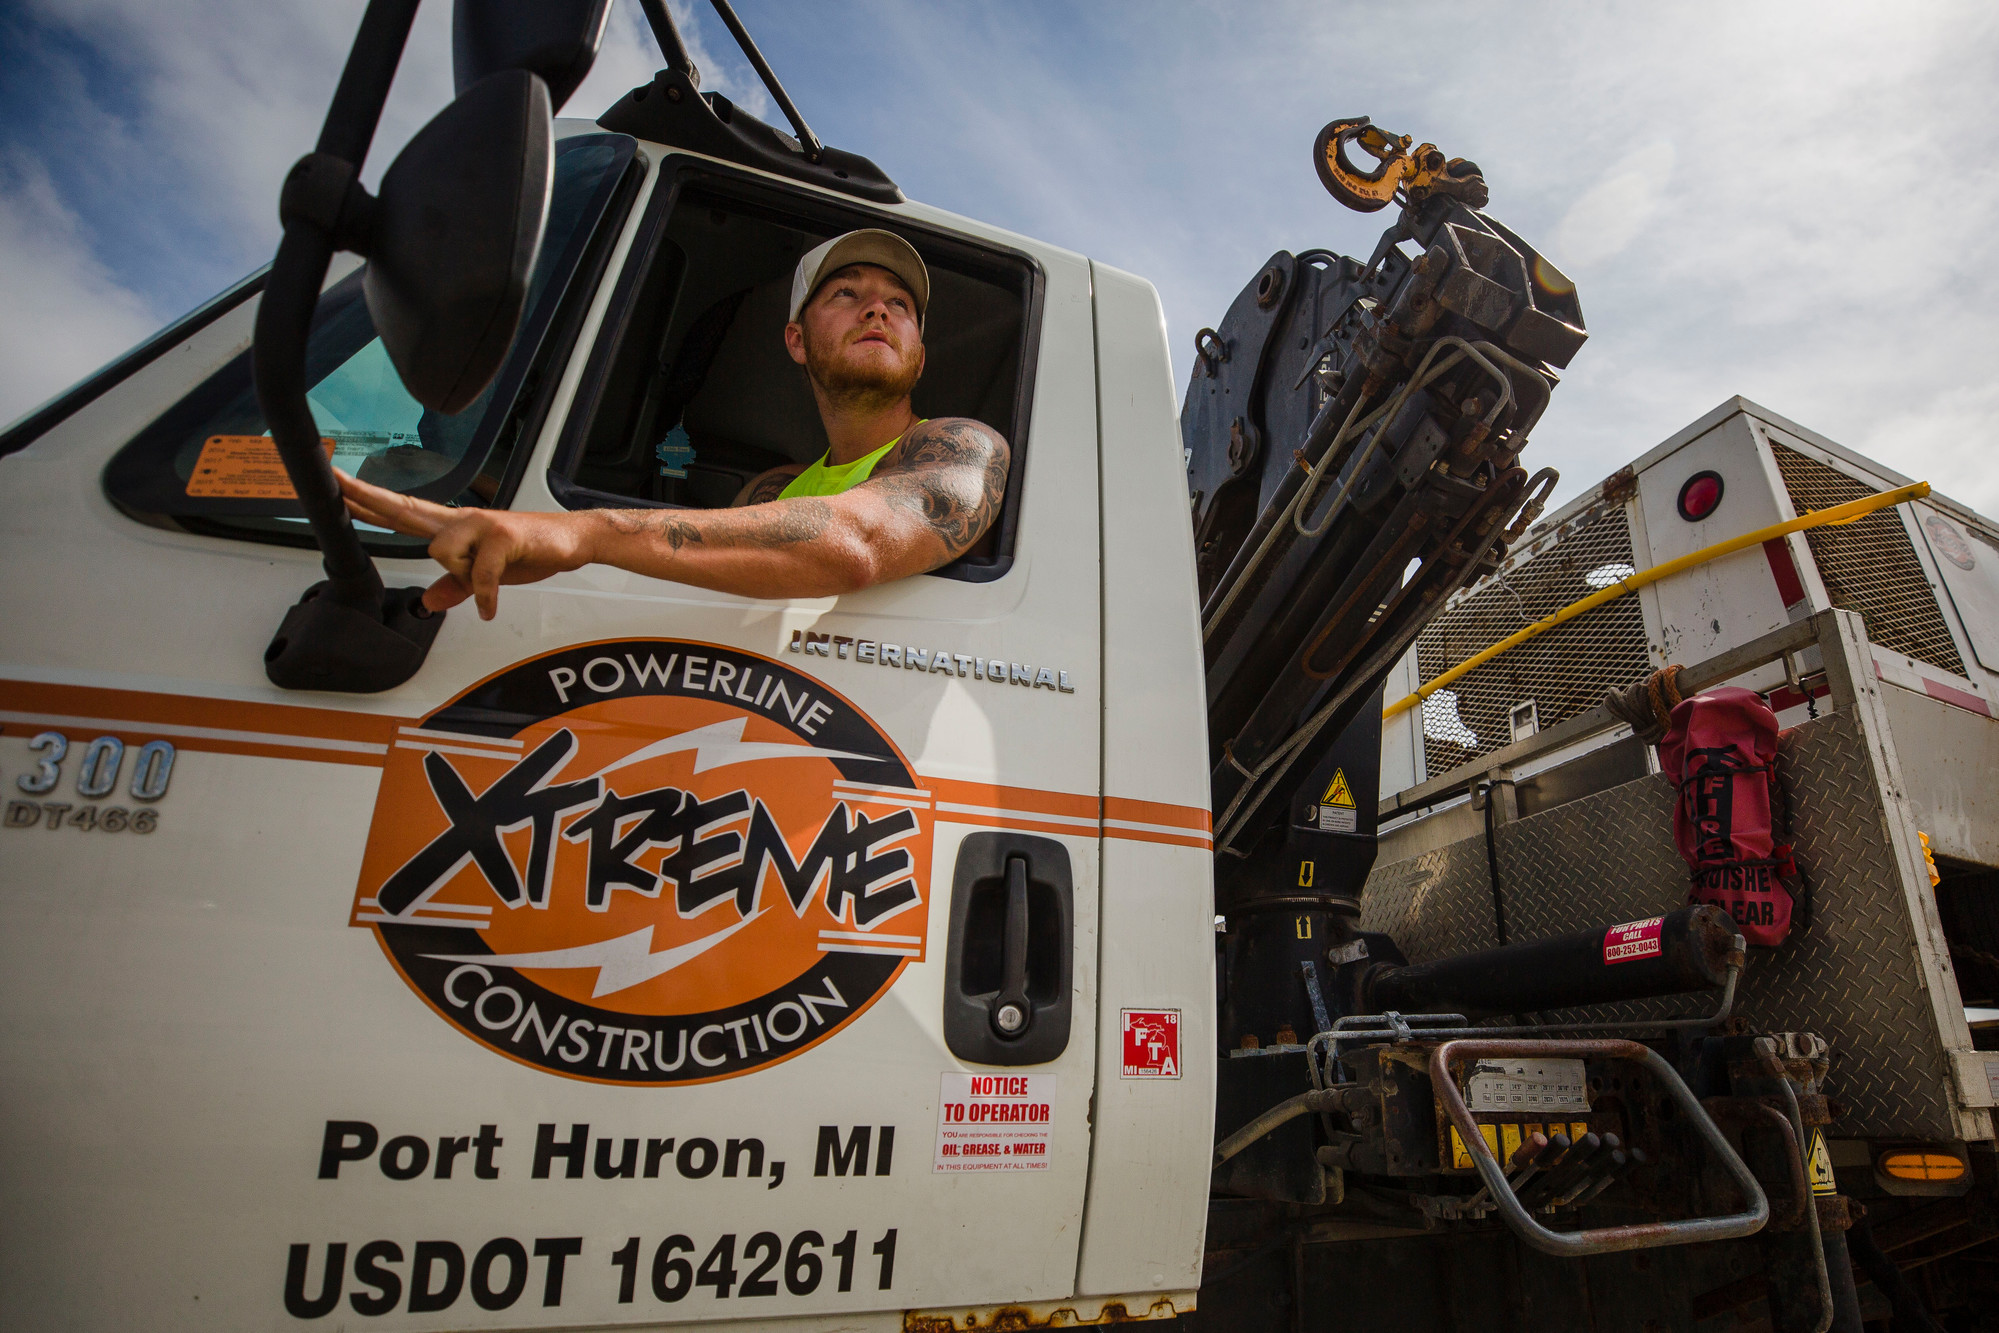 Jake Bieke, an employee with Xtreme Powerline and Construction speaks with a coworker out of frame on Thursday, Sept. 13. Xtreme Powerline and Construction is out of Port Huron, Michigan, but also has crews in Sumter from Florida.